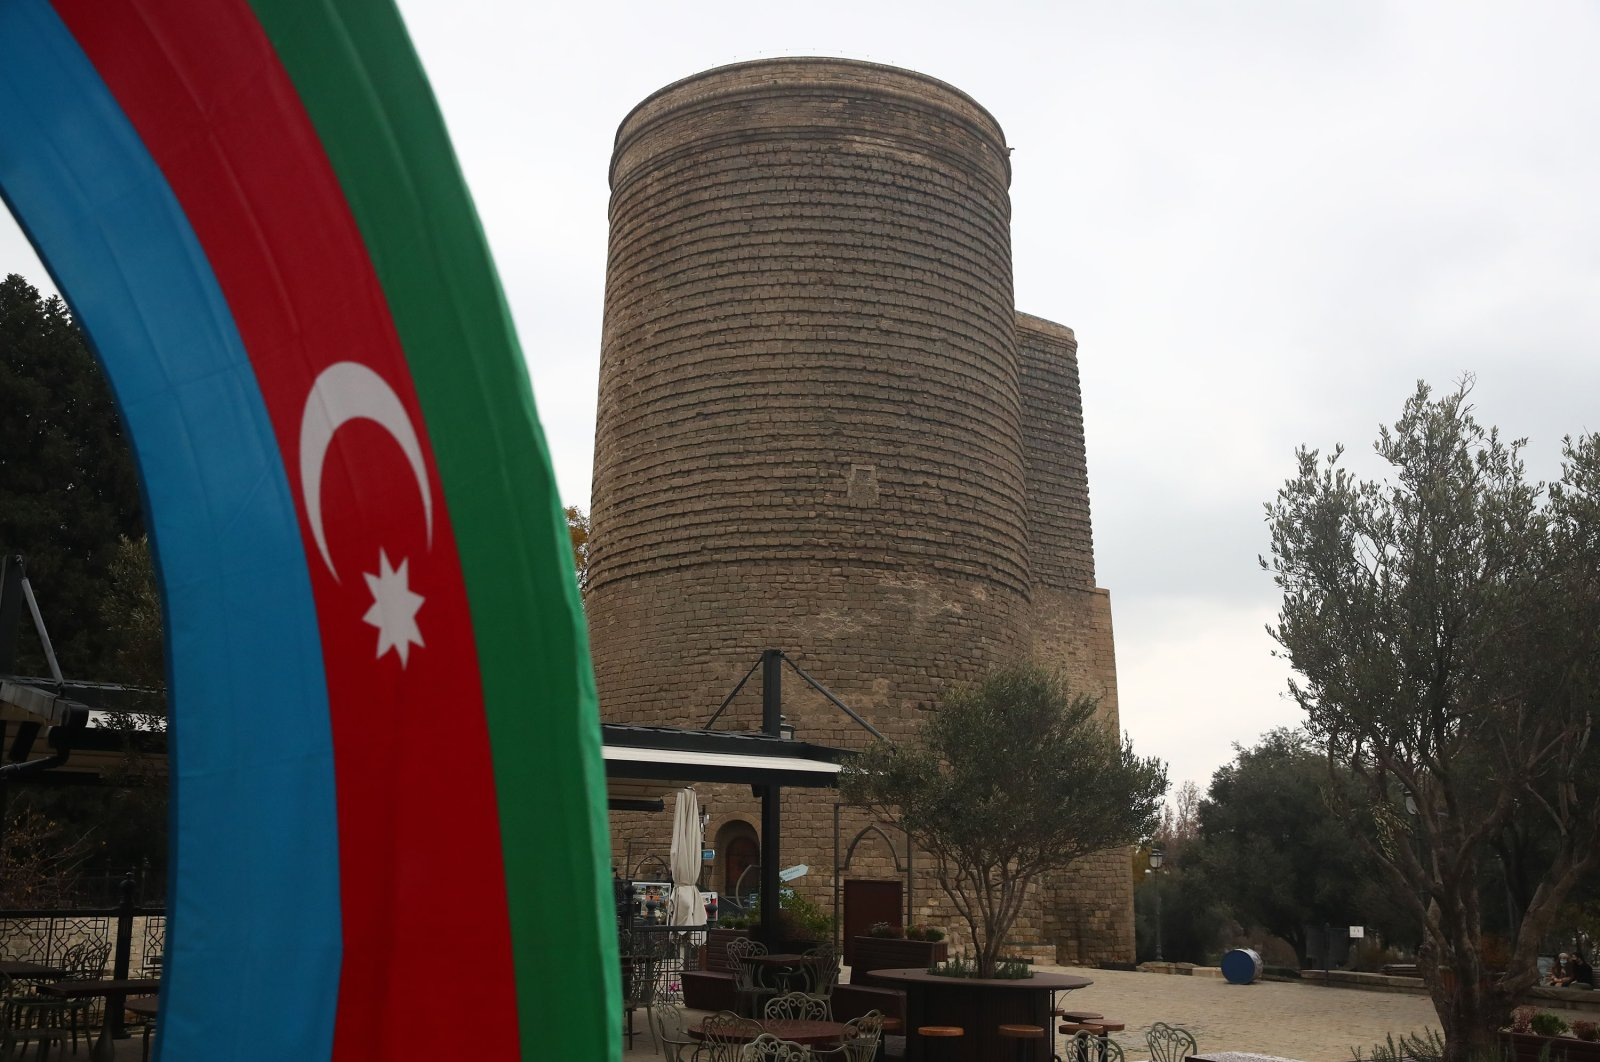 The flag of Azerbaijan is seen against the background of the Maiden, Baku, Azerbaijan, Dec. 9, 2020 (Getty Images)